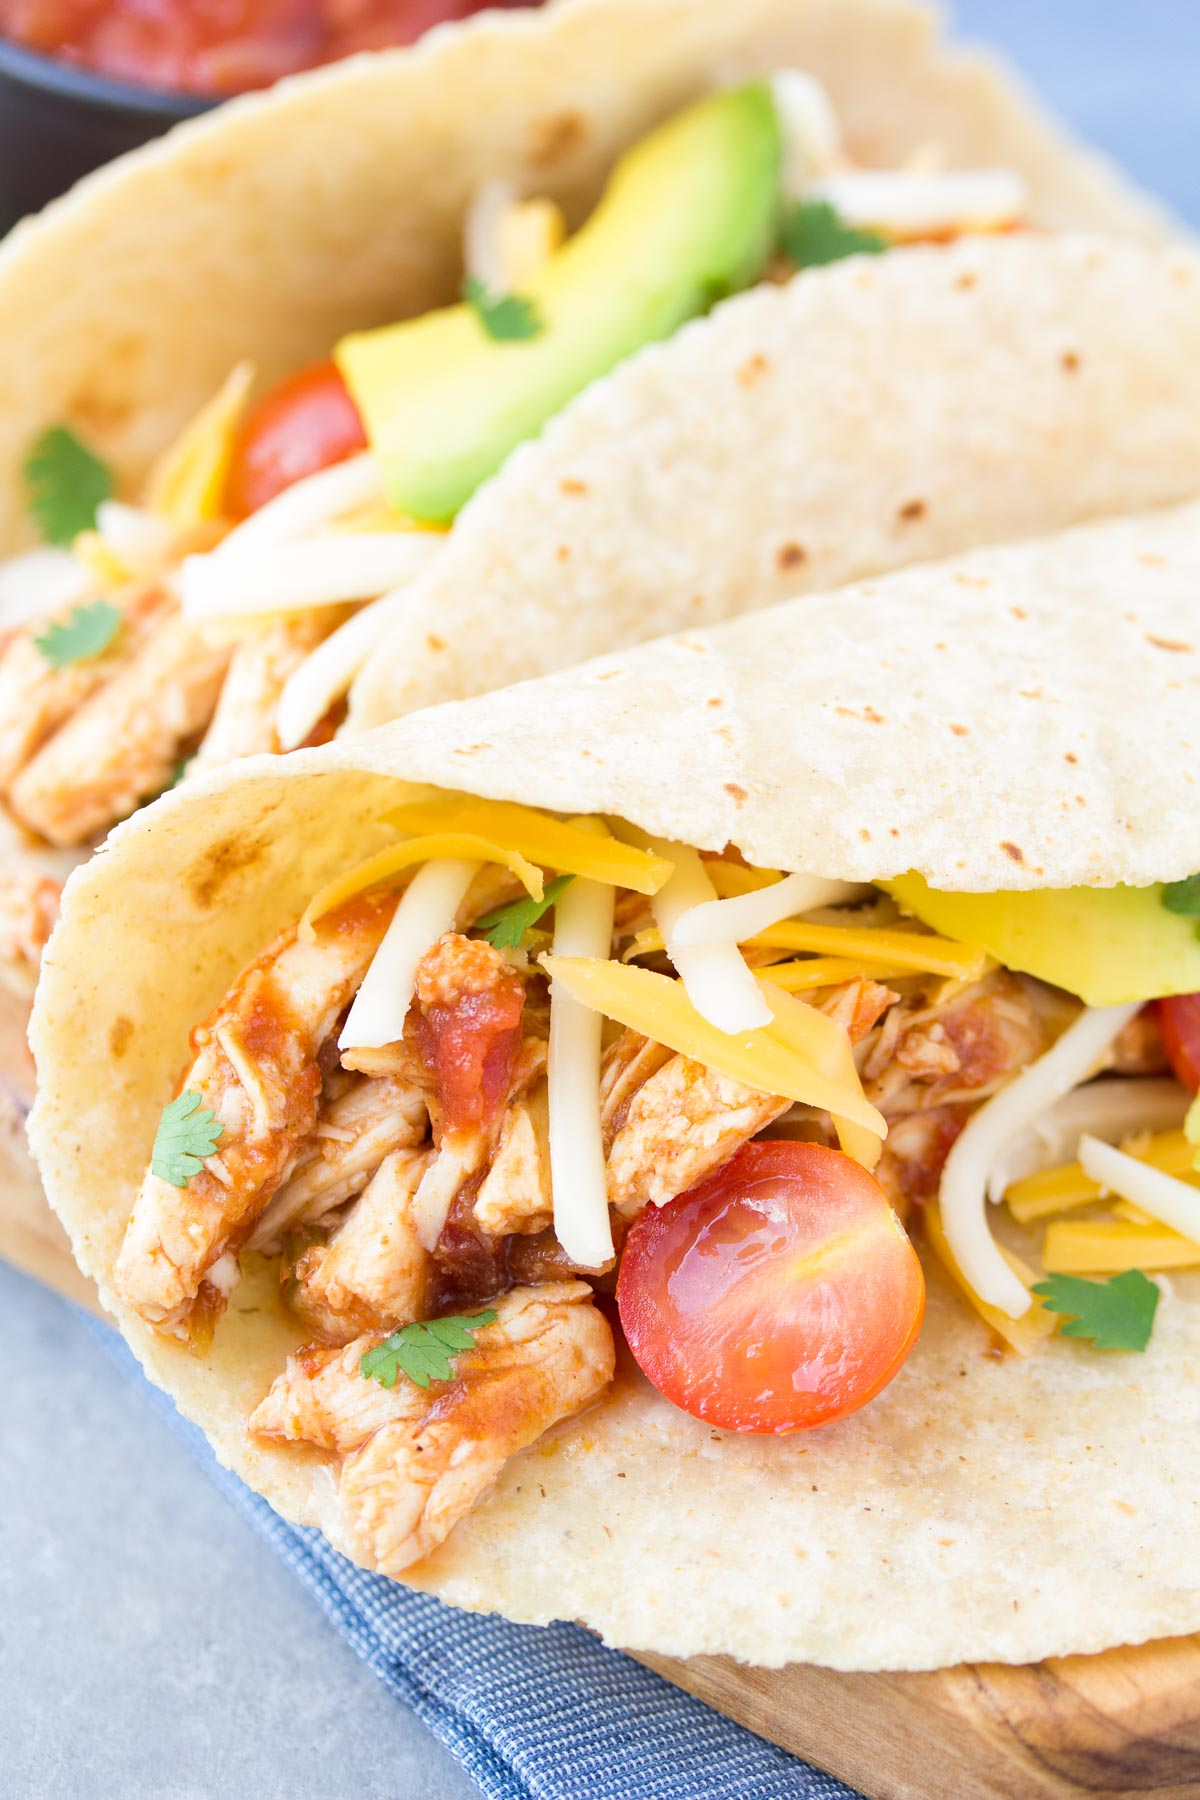 Shredded chicken tacos with salsa, cheese and avocado.